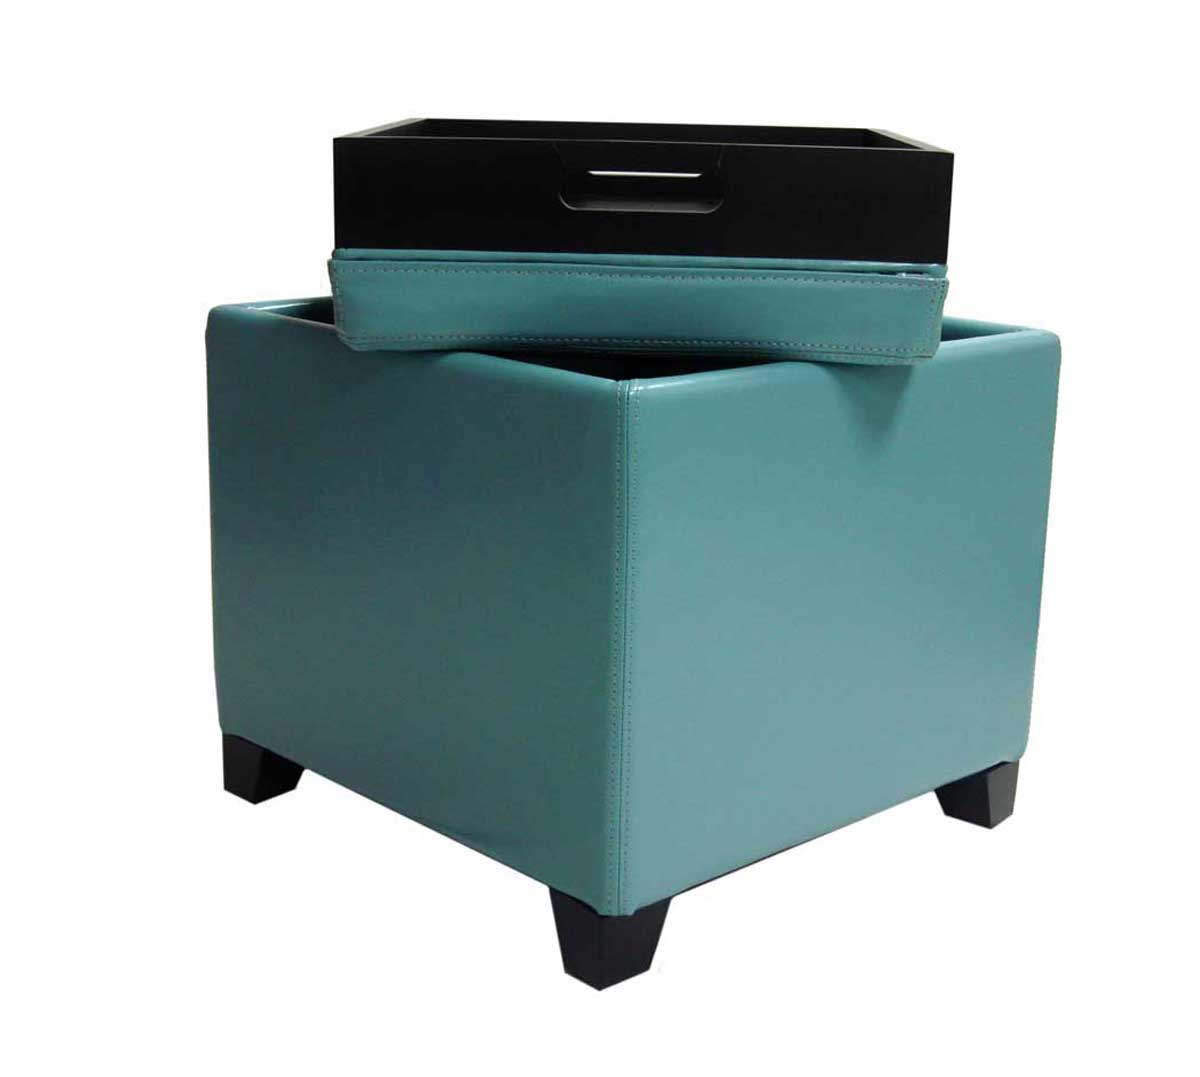 armen living contemporary storage ottoman with tray  sky blue al  - armen living contemporary storage ottoman with tray  sky blue